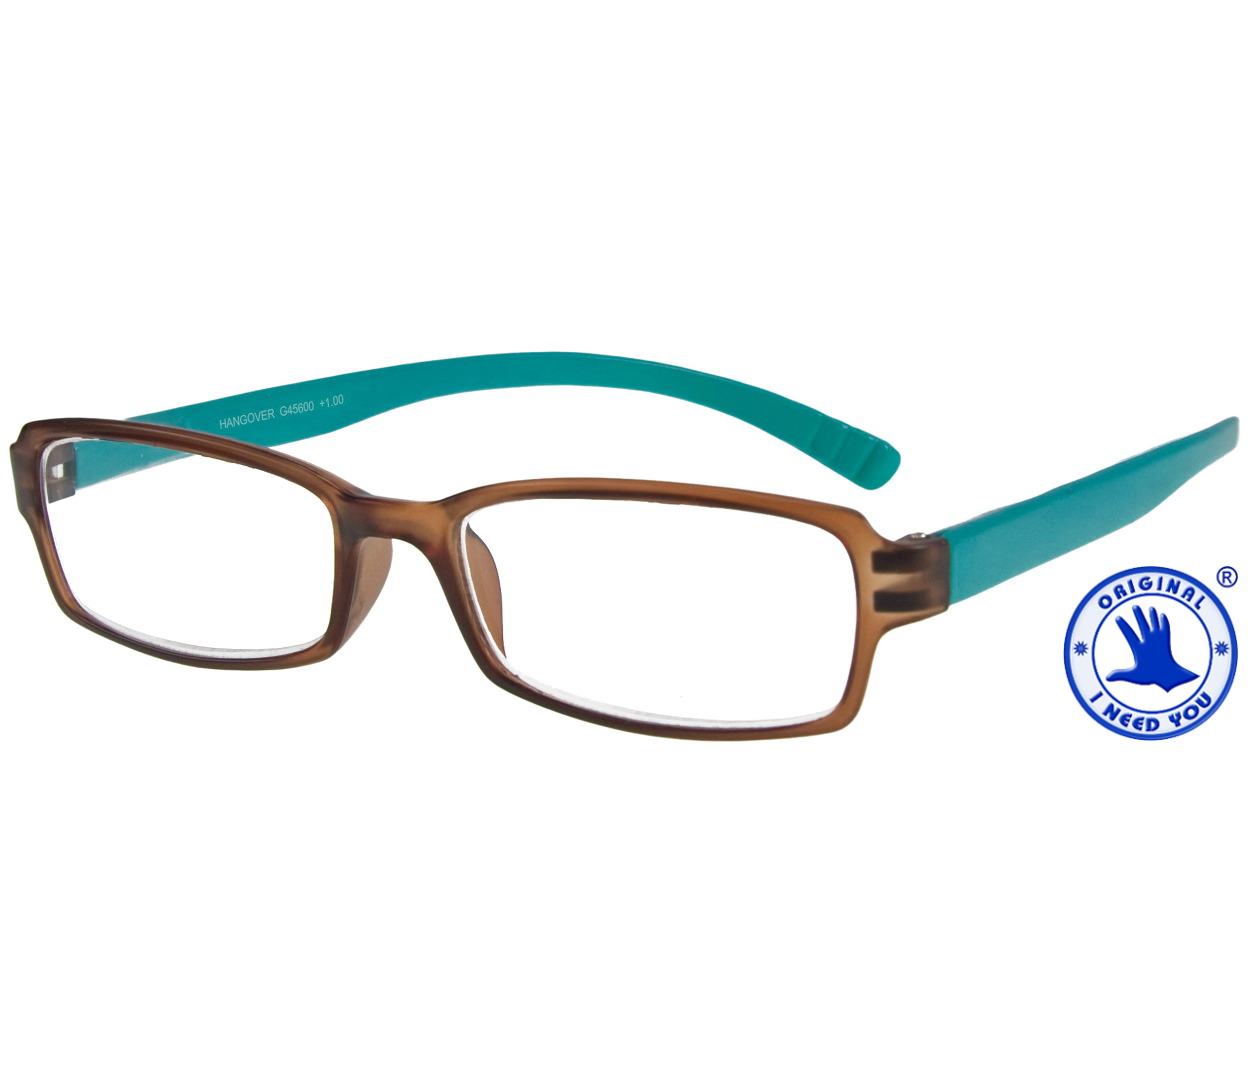 Main Image (Angle) - Hangover (Brown) Neck Hanger Reading Glasses